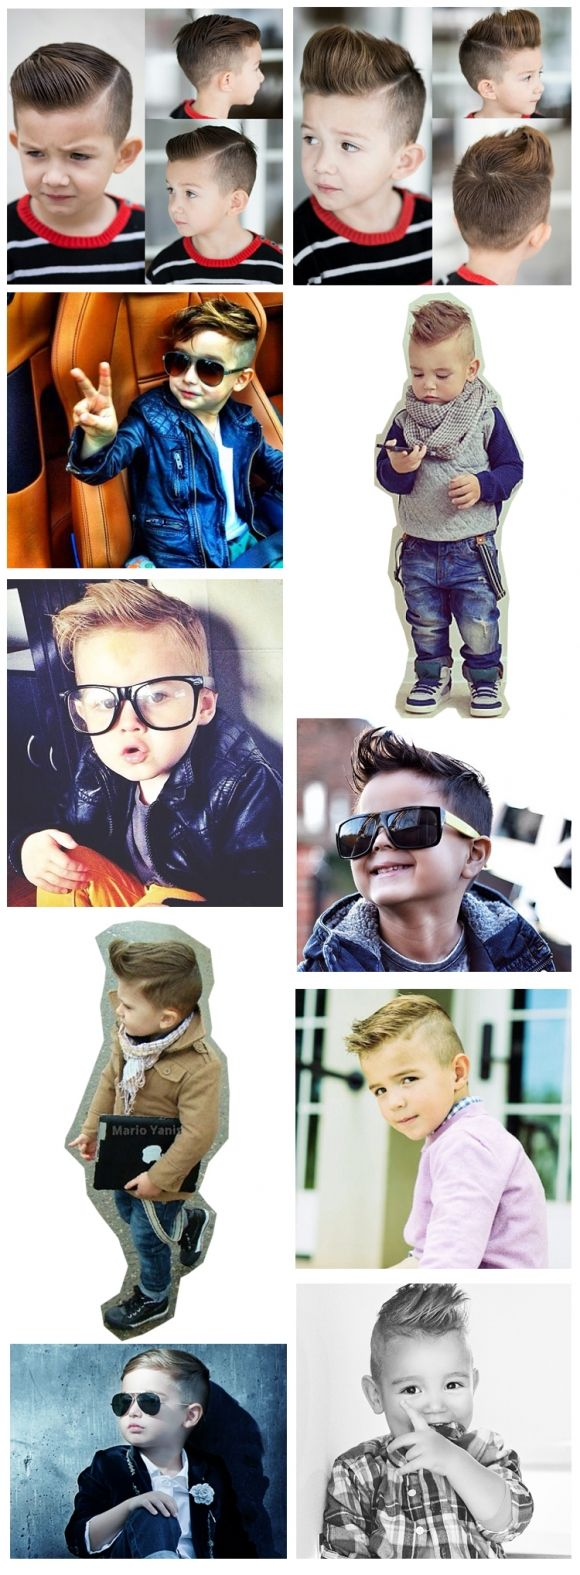 Kids/Boys hair cut and style inspiration - for the special little man in your life!